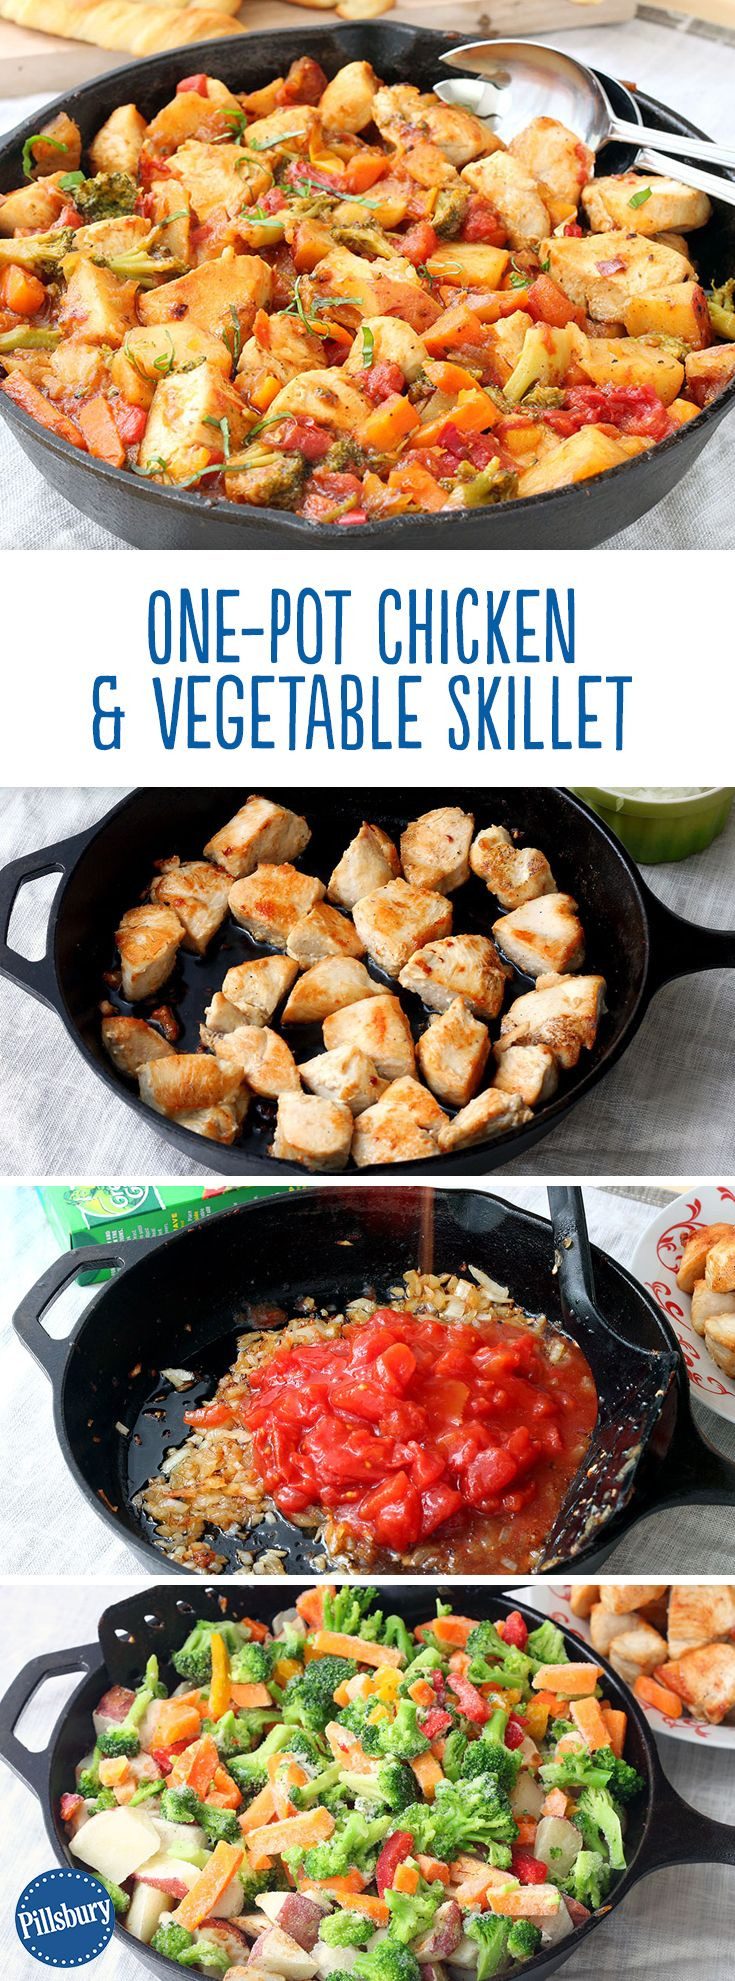 Not a fan of doing the dishes? You'll be saved the headache with this one-dish Chicken and Vegetable Skillet! Frozen veggies are the key to this flavor-packed dinner.